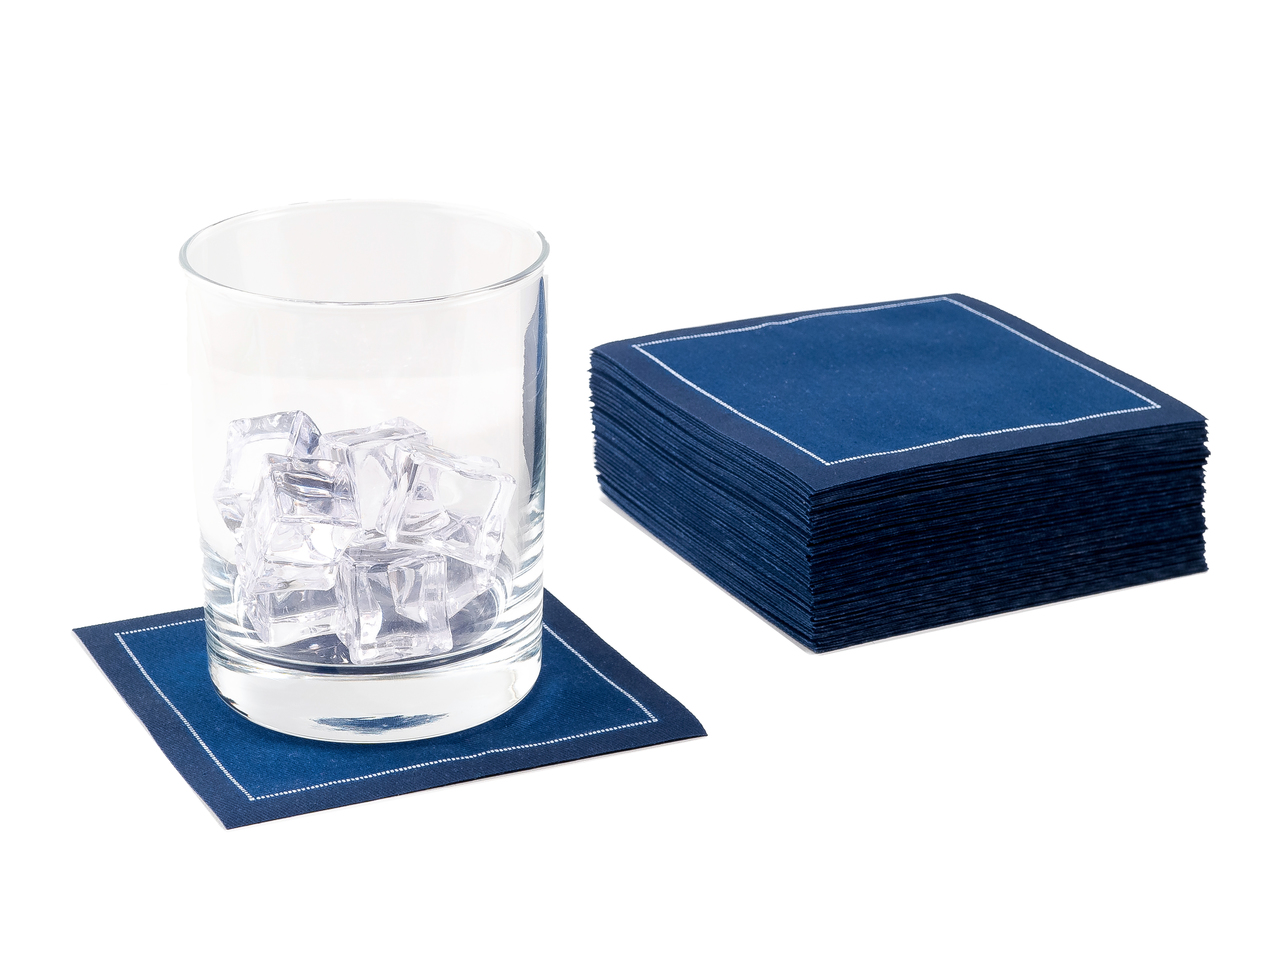 "Midnight Blue Cotton Cocktail (200 GSM) - 4.5"" x 4.5"" - 100 units"